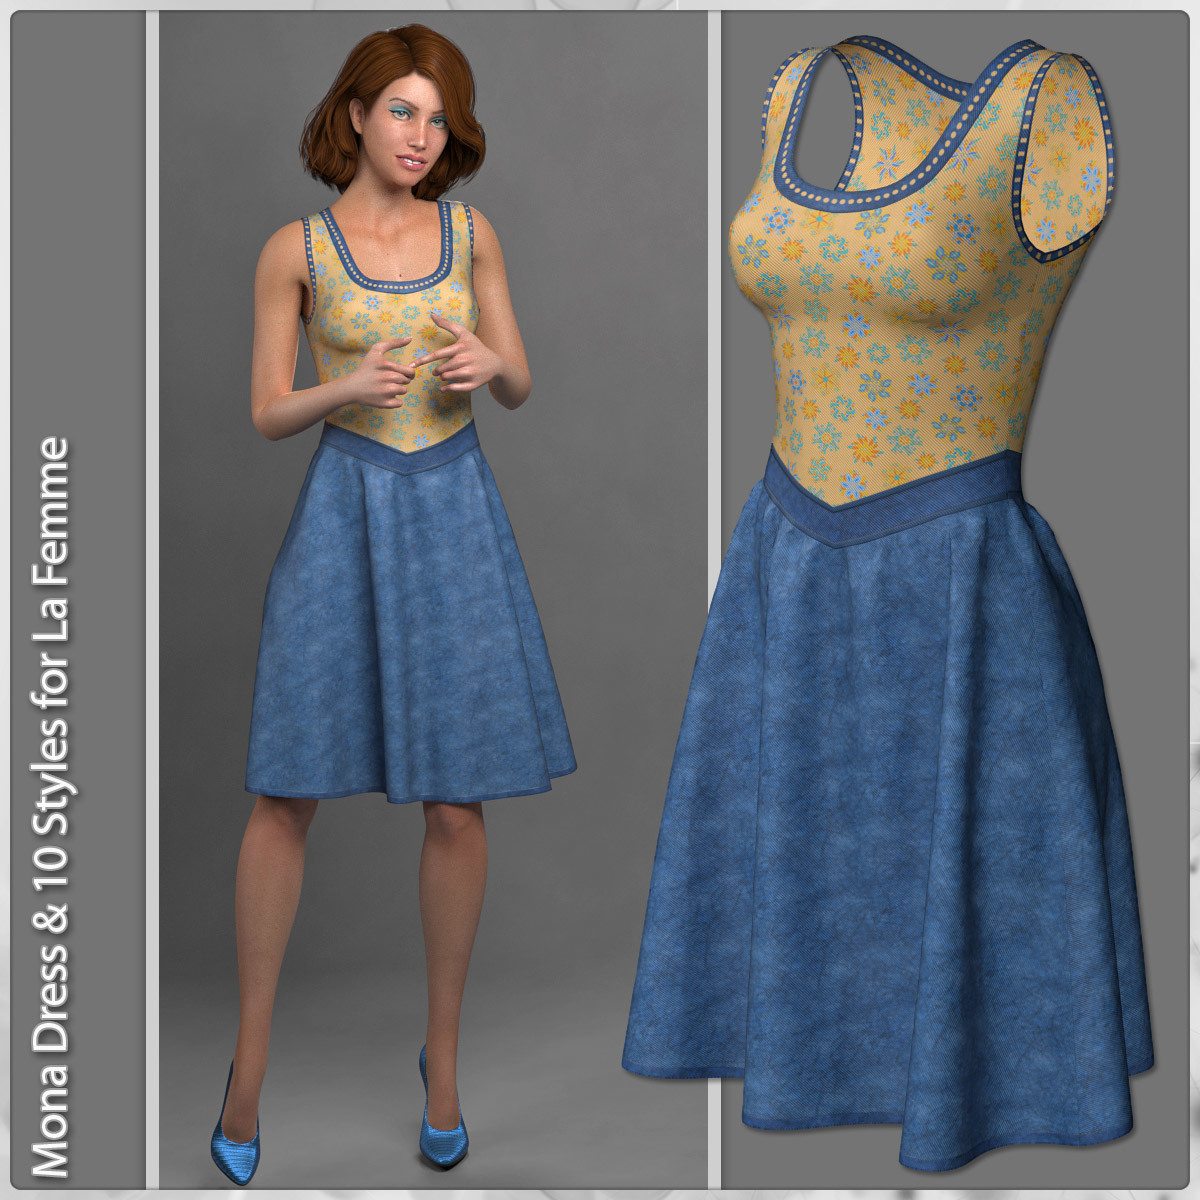 Mona Dress and 10 Styles for La Femme by karanta